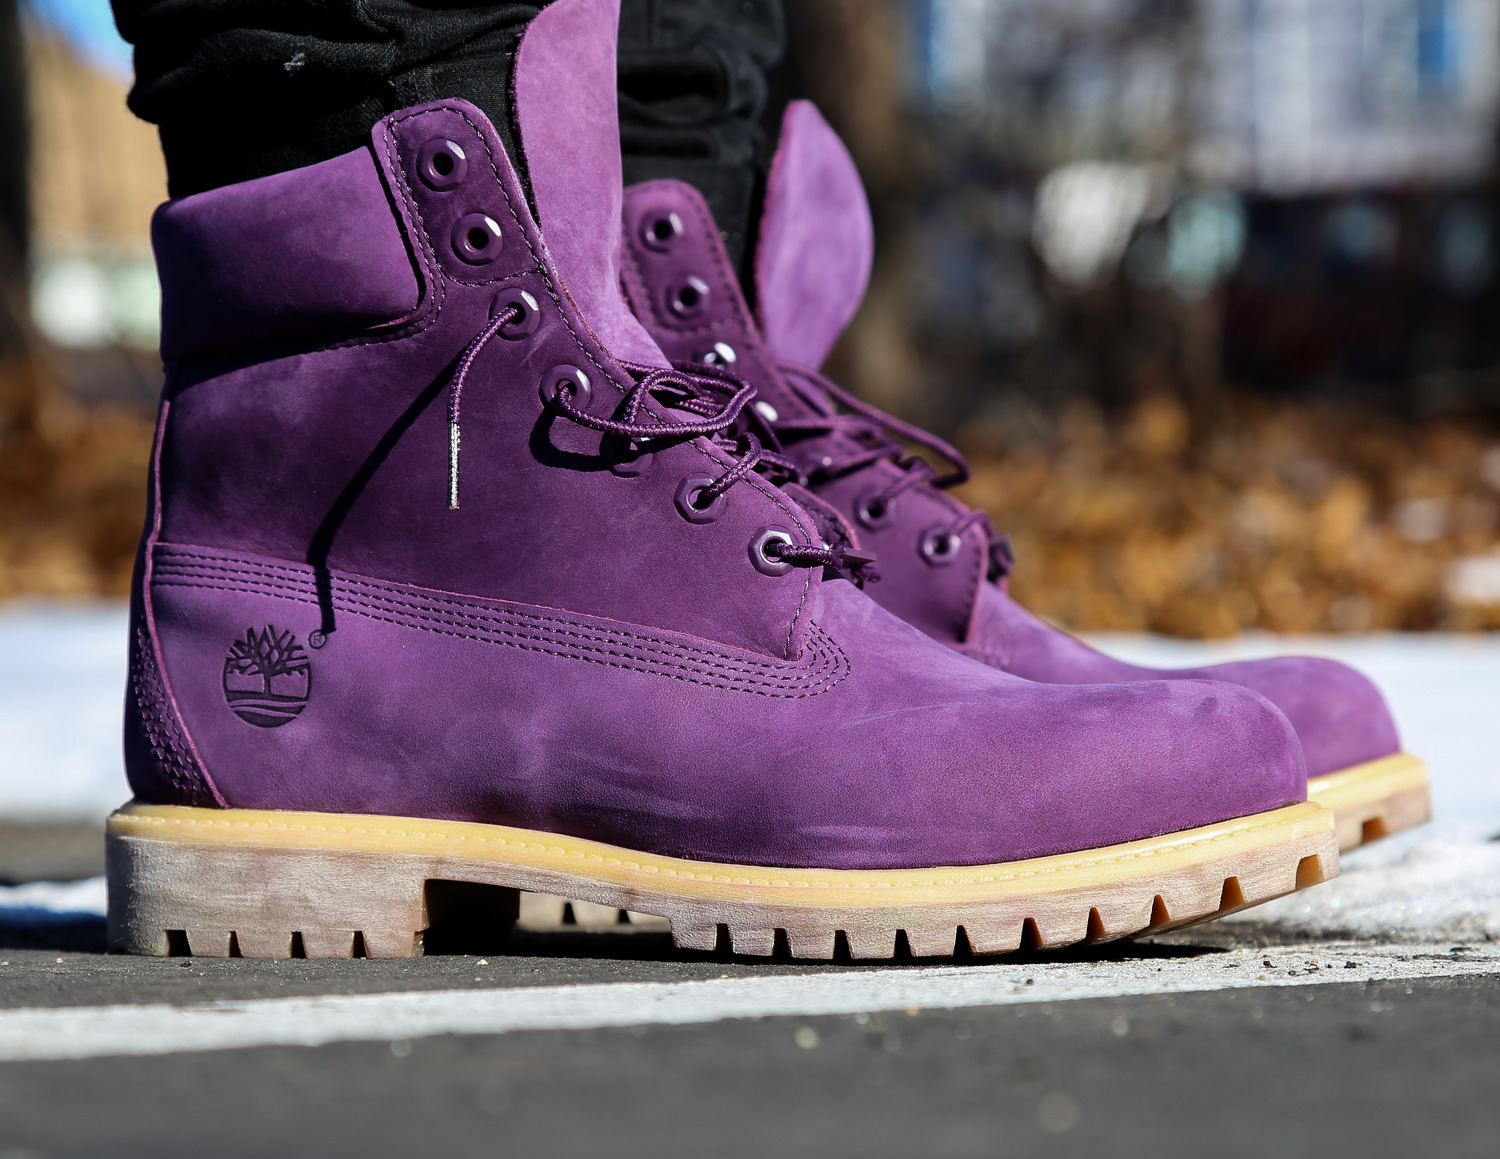 online store 249e4 43b3f Exclusive Look at the Villa x Timberland 6